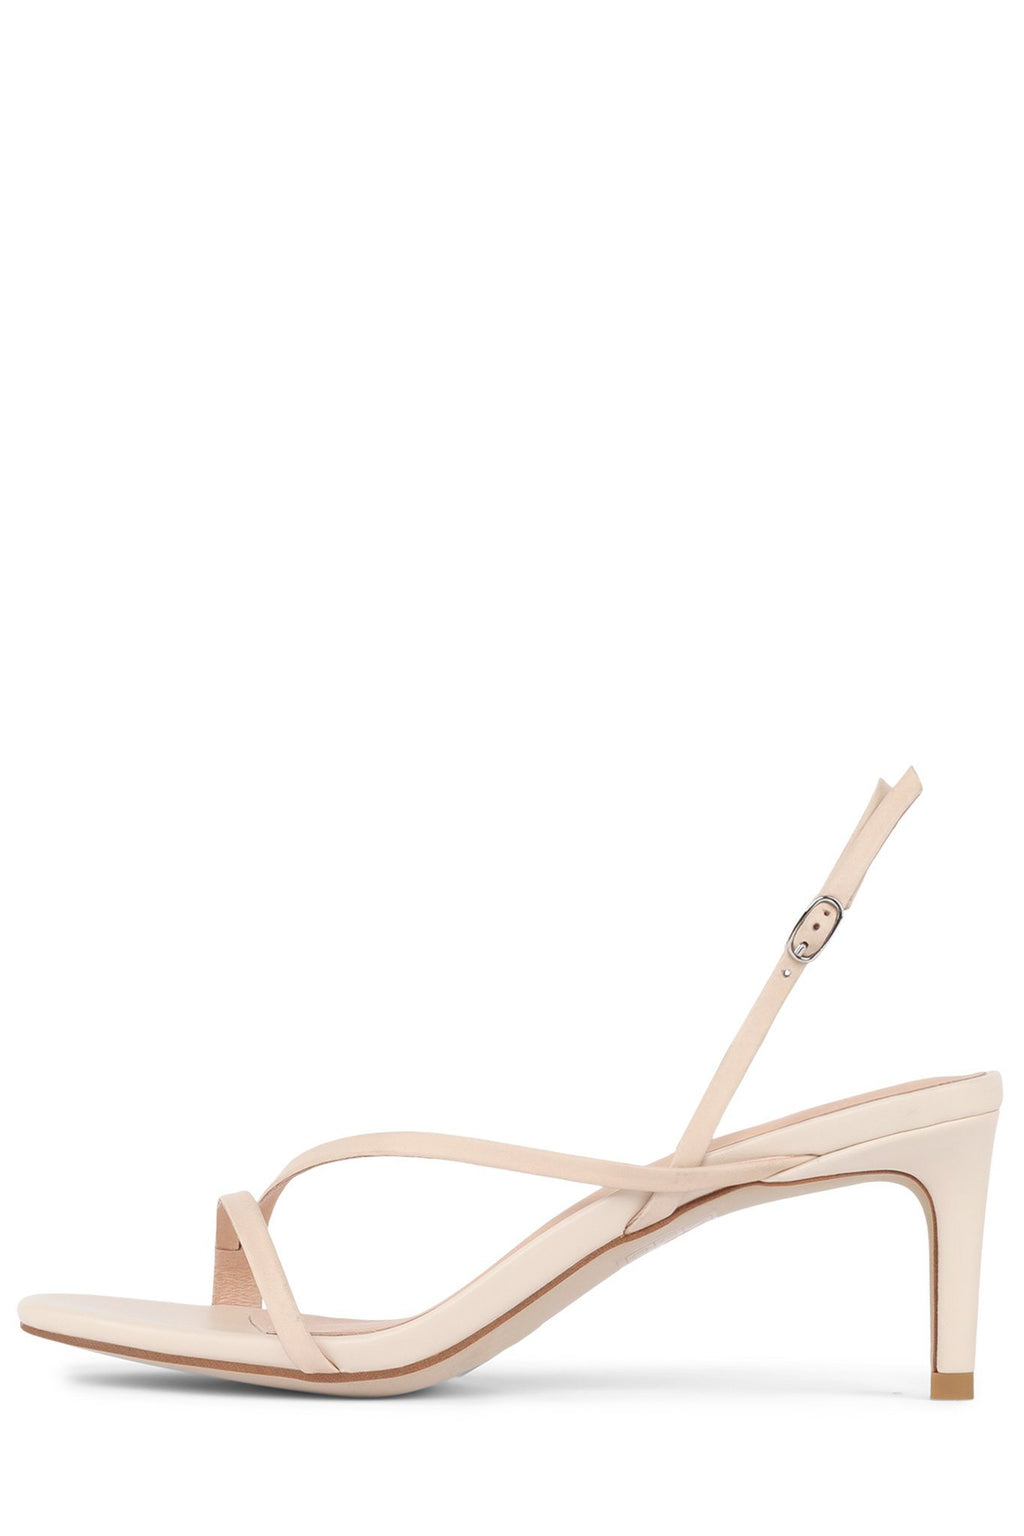 MORPH Heeled Sandal Jeffrey Campbell Natural 5.5